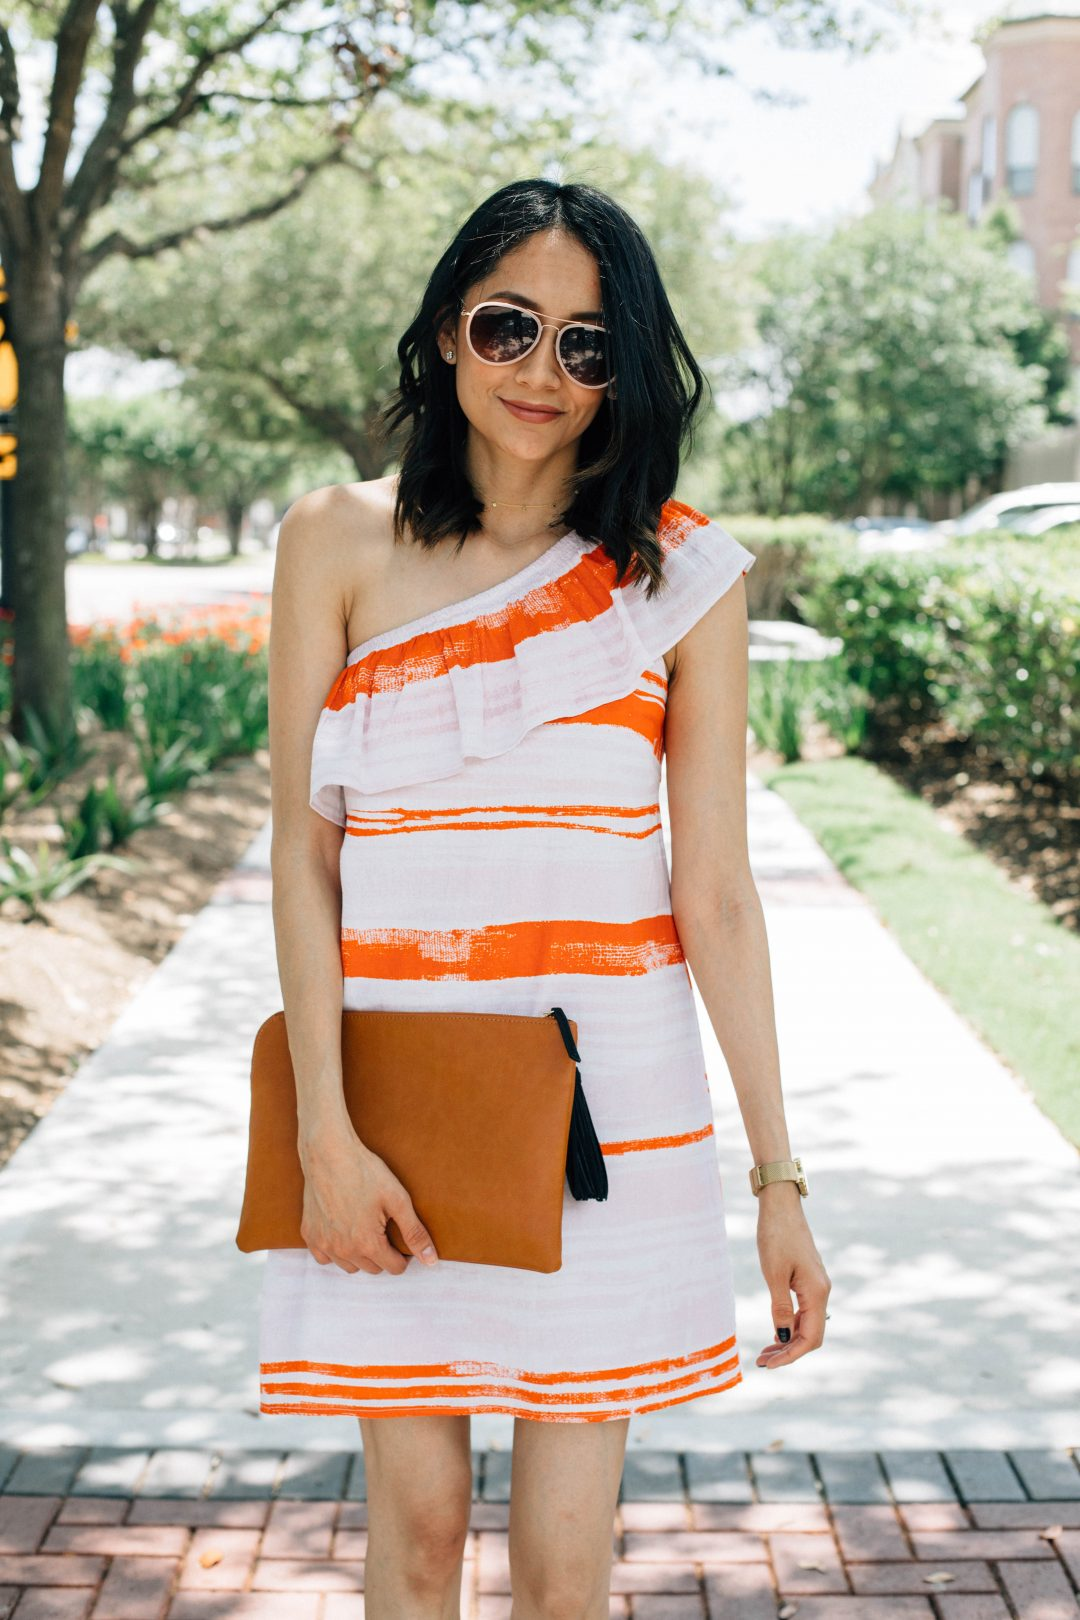 An effortless way to look chic for brunch